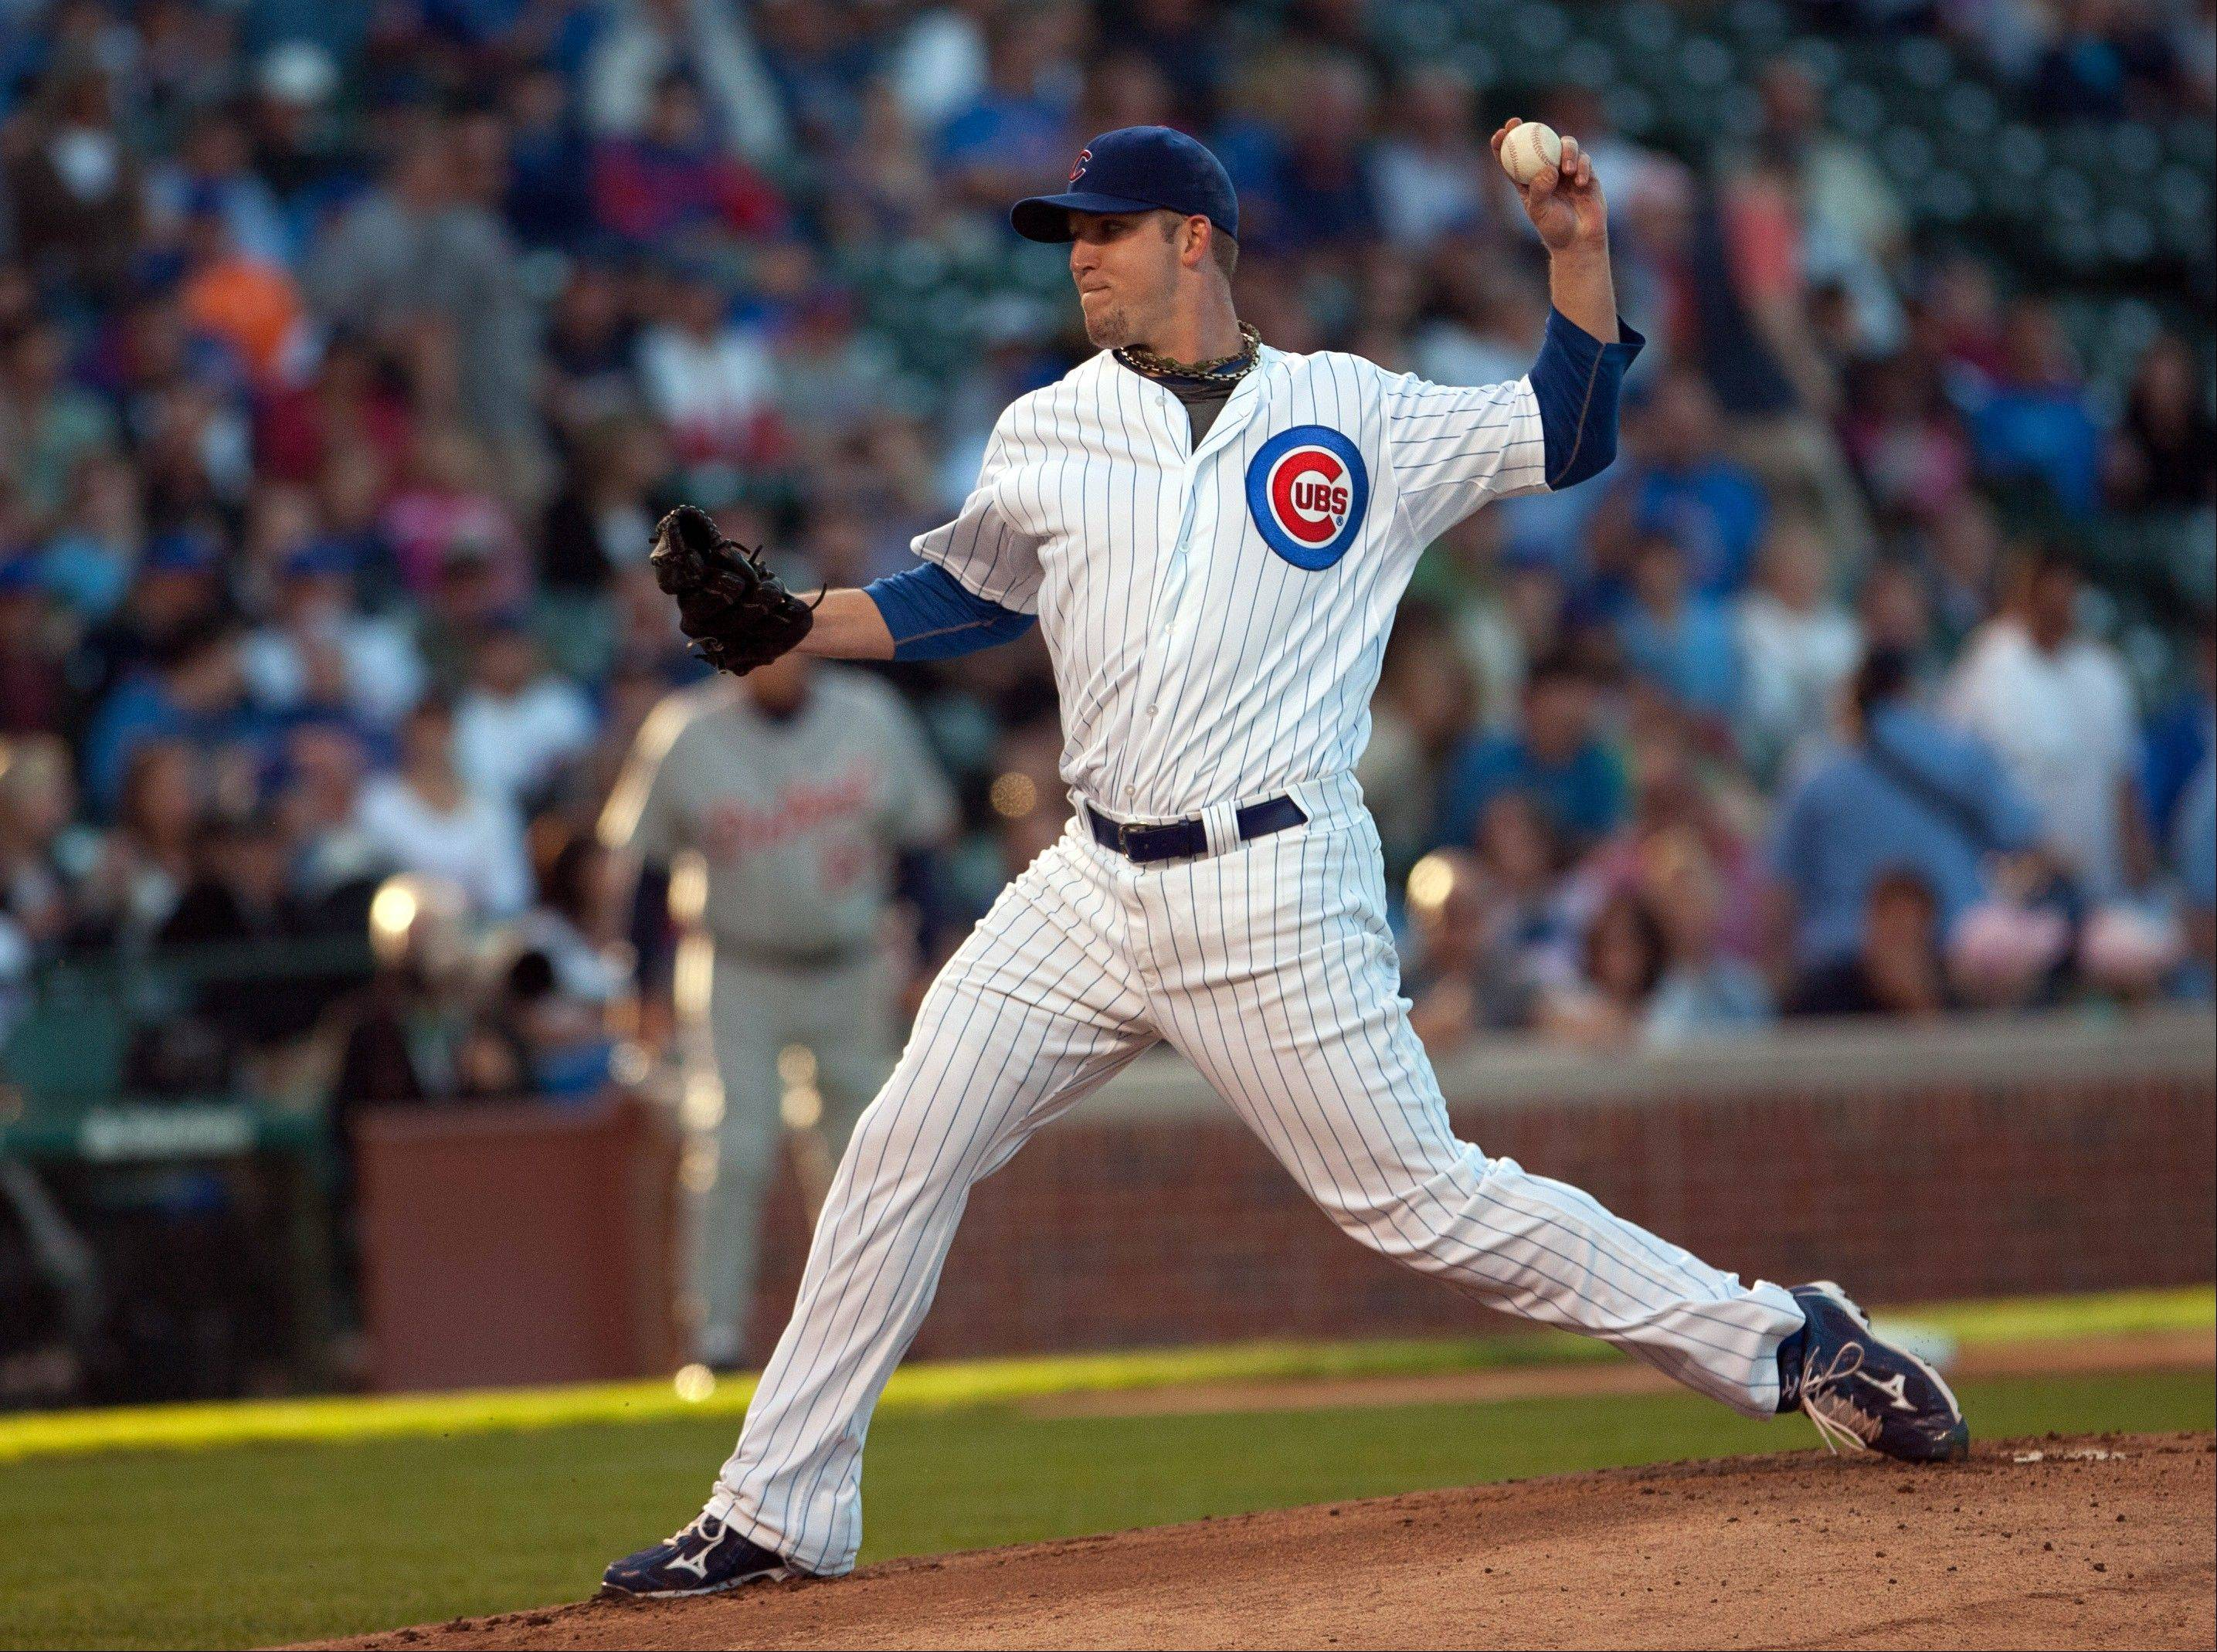 Chicago Cubs starting pitcher Paul Maholm delivers to the Detroit Tigers in the first inning Tuesday during an interleague game in Chicago.